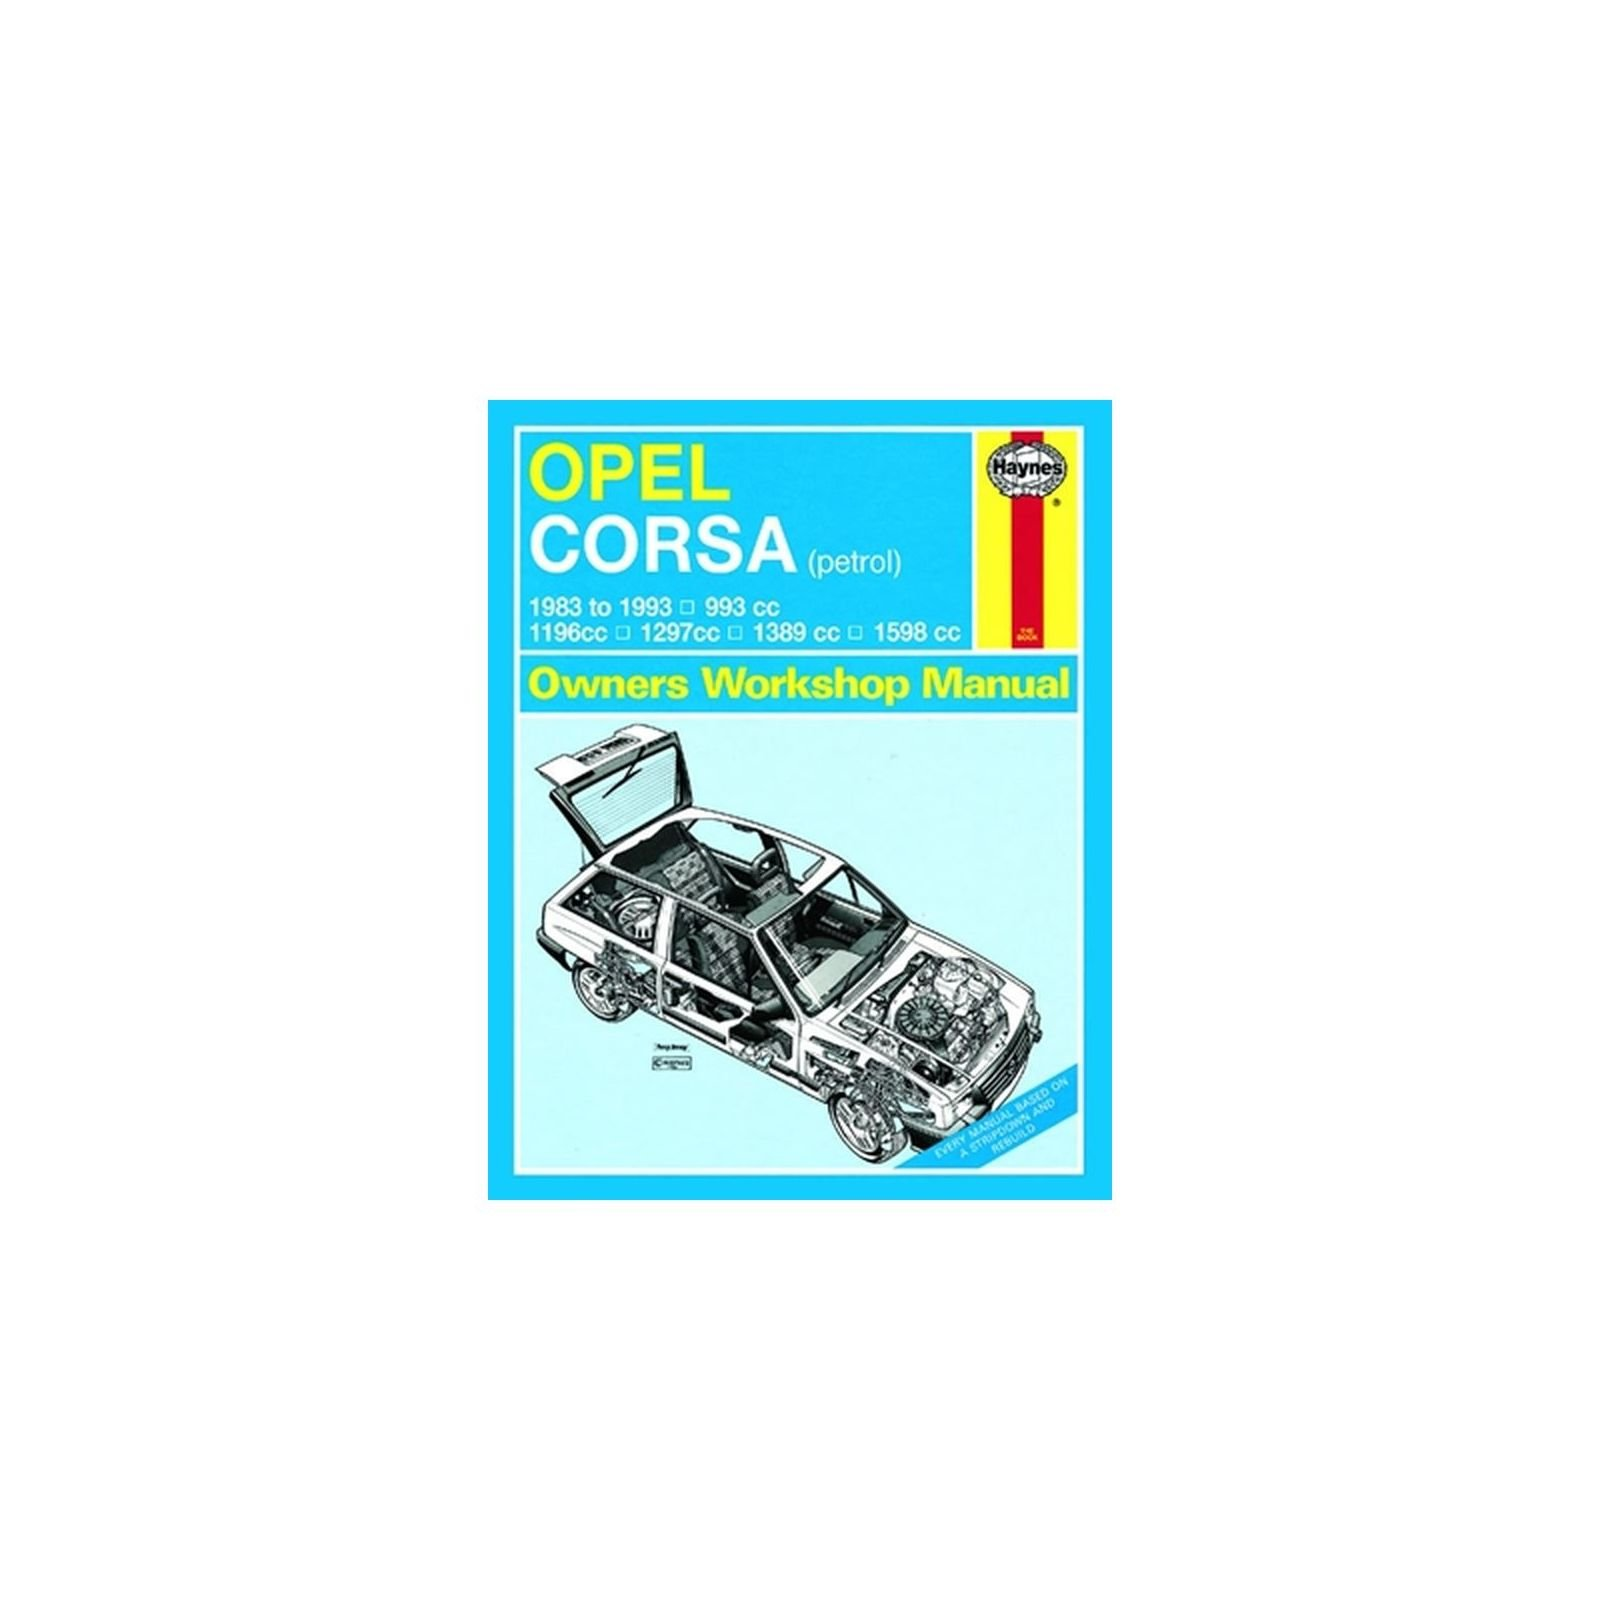 Opel Corsa ('83 to '93) (Service & repair manuals) Hardcover – Import, 2  Aug 1995